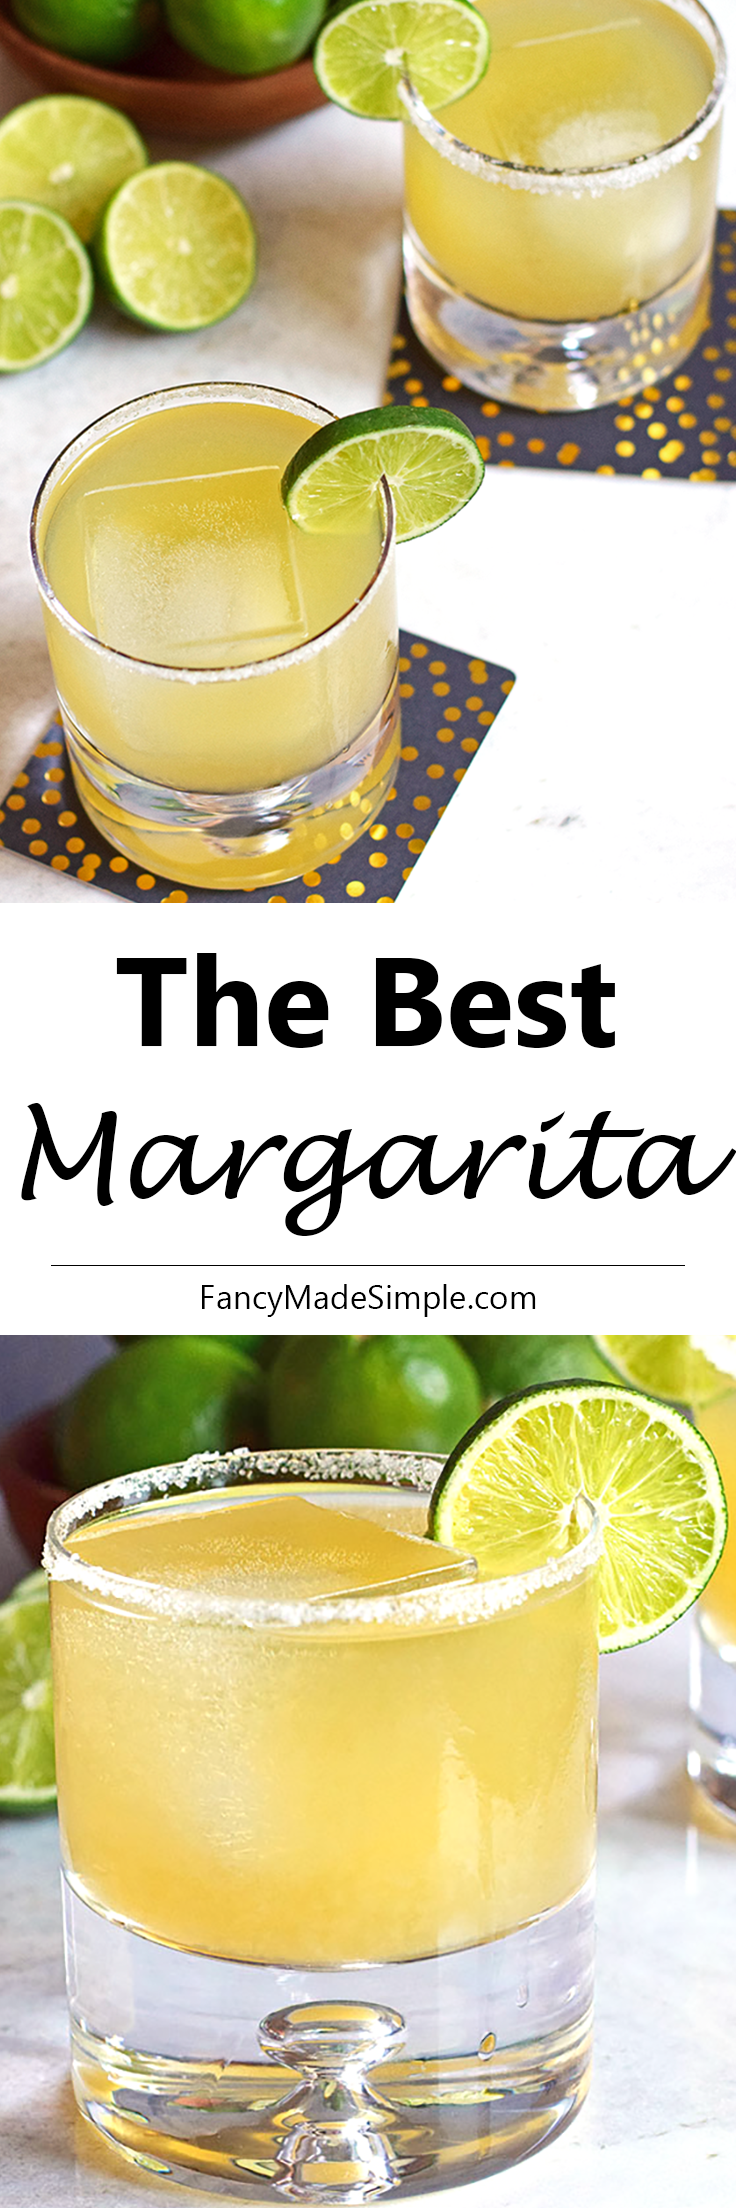 The best margarita recipe. This light and refreshing drink is perfect for a hot summer night. Enjoy one of these at your next party! #margarita #best #recipe #cocktail #drink #recipe #lime #tequila #cointreau #agave #partyideas